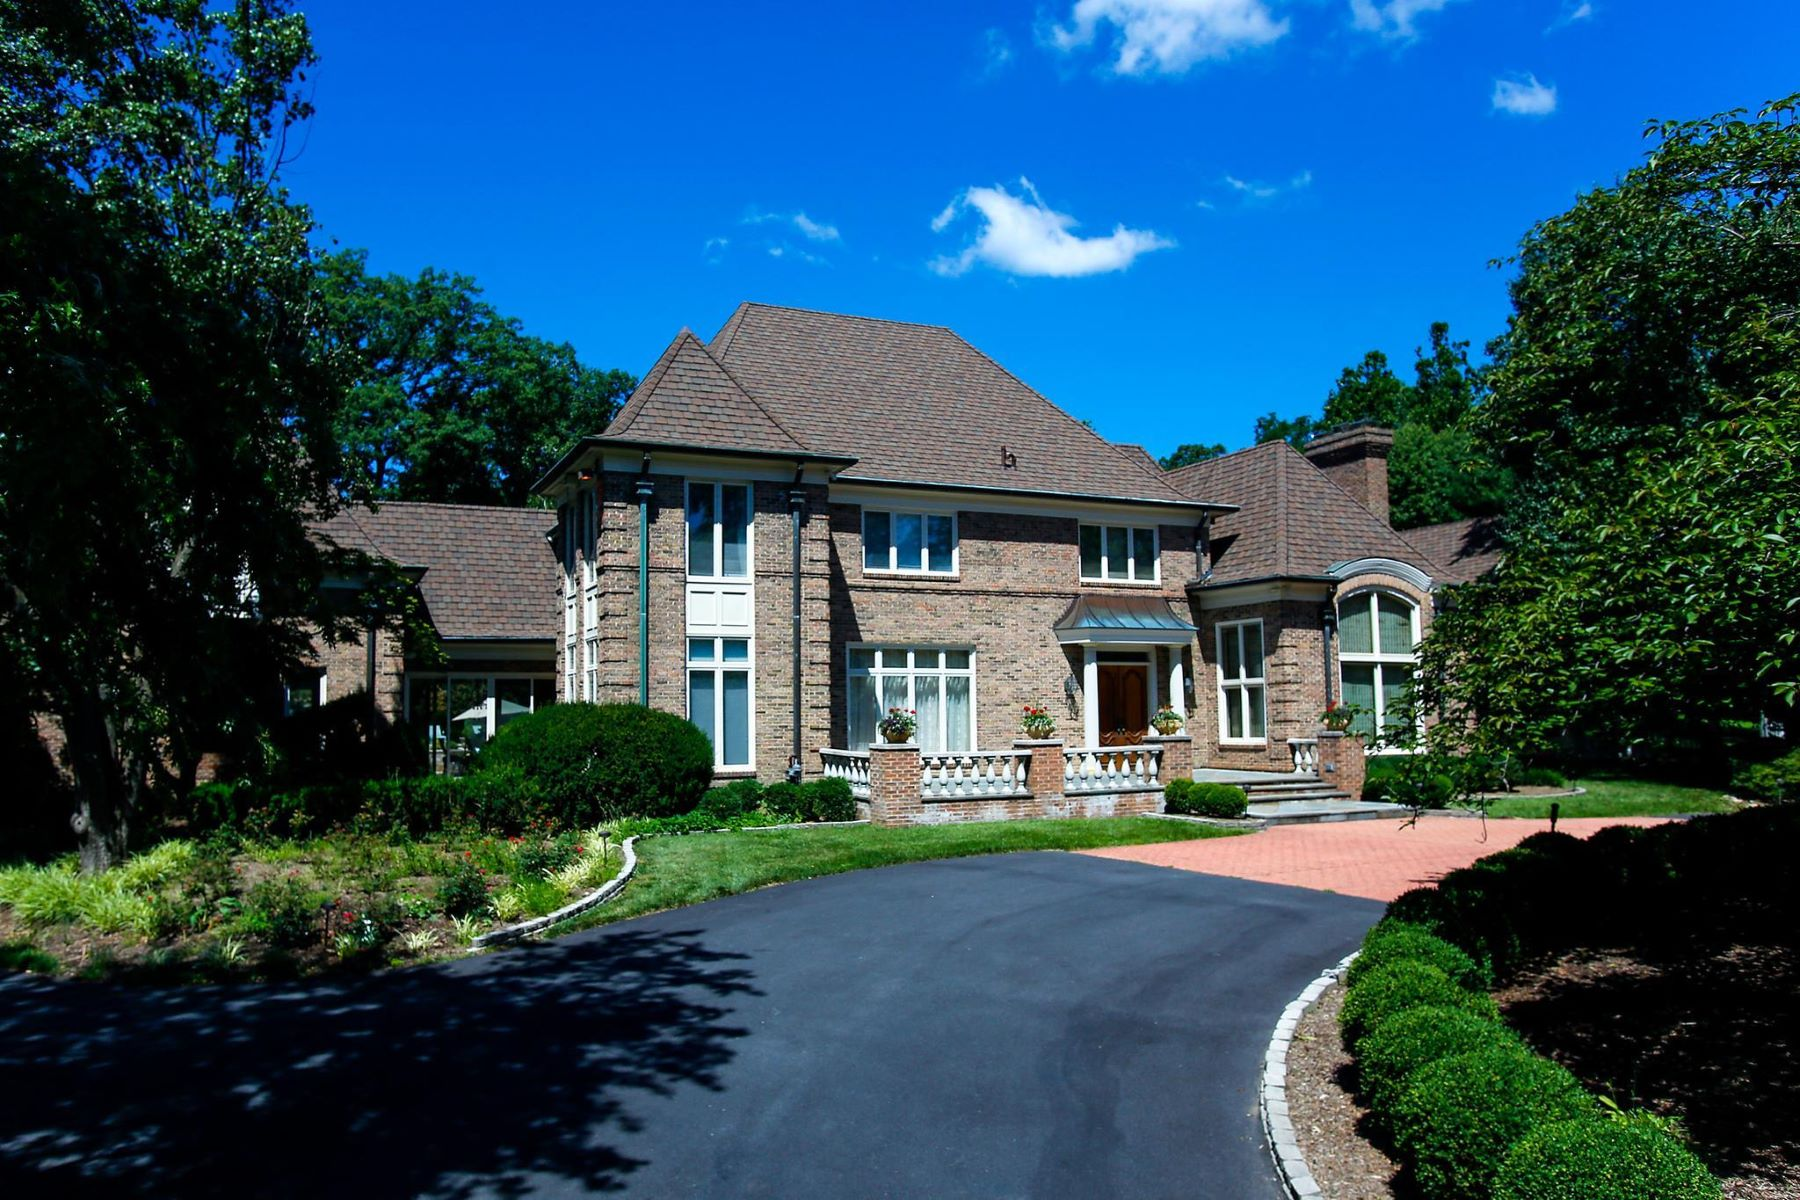 Single Family Home for Rent at 10608 Stapleford Hall Dr 10608 Stapleford Hall Dr Potomac, Maryland 20854 United States